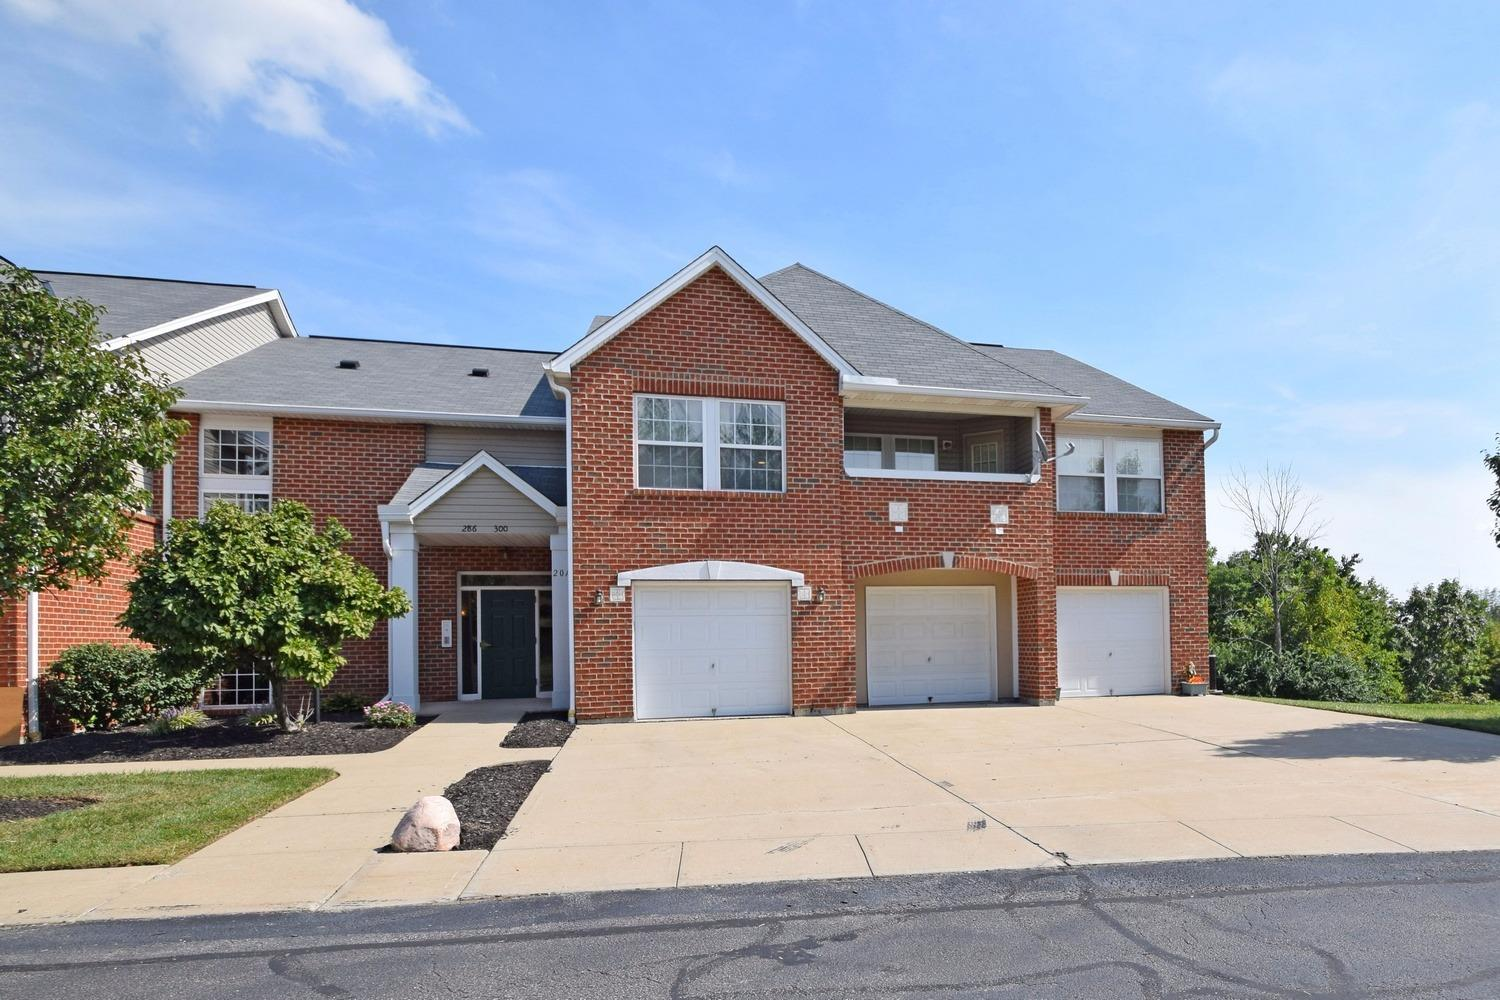 Photo 1 for 298 Deepwoods Dr, 20A Highland Heights, KY 41076